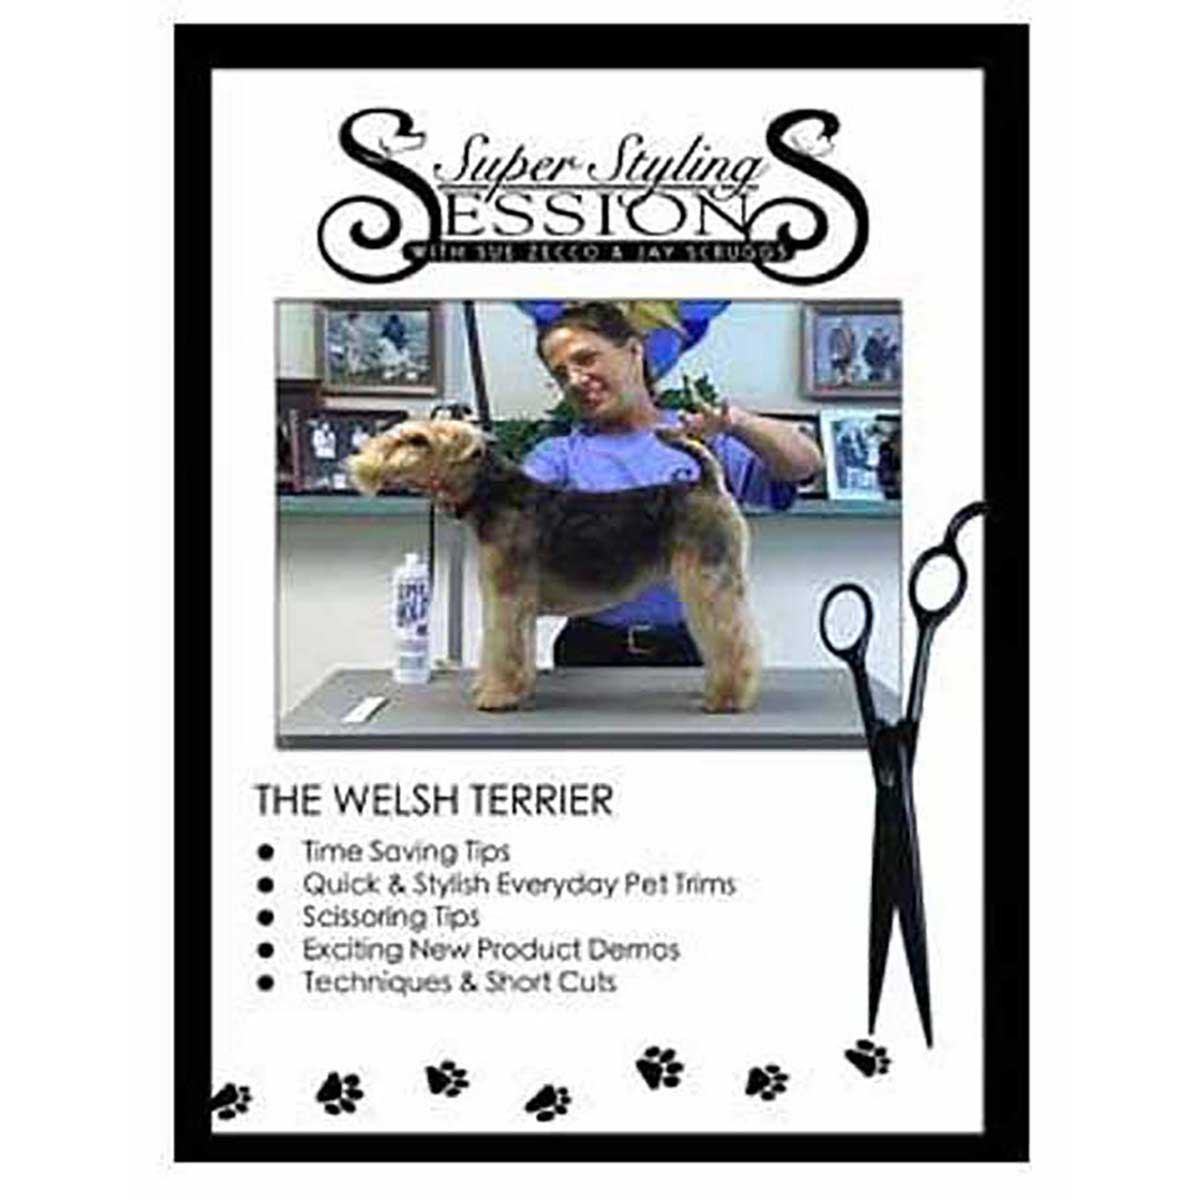 Super Styling Sessions - Welsh Terrier Grooming DVD for Professional Groomers